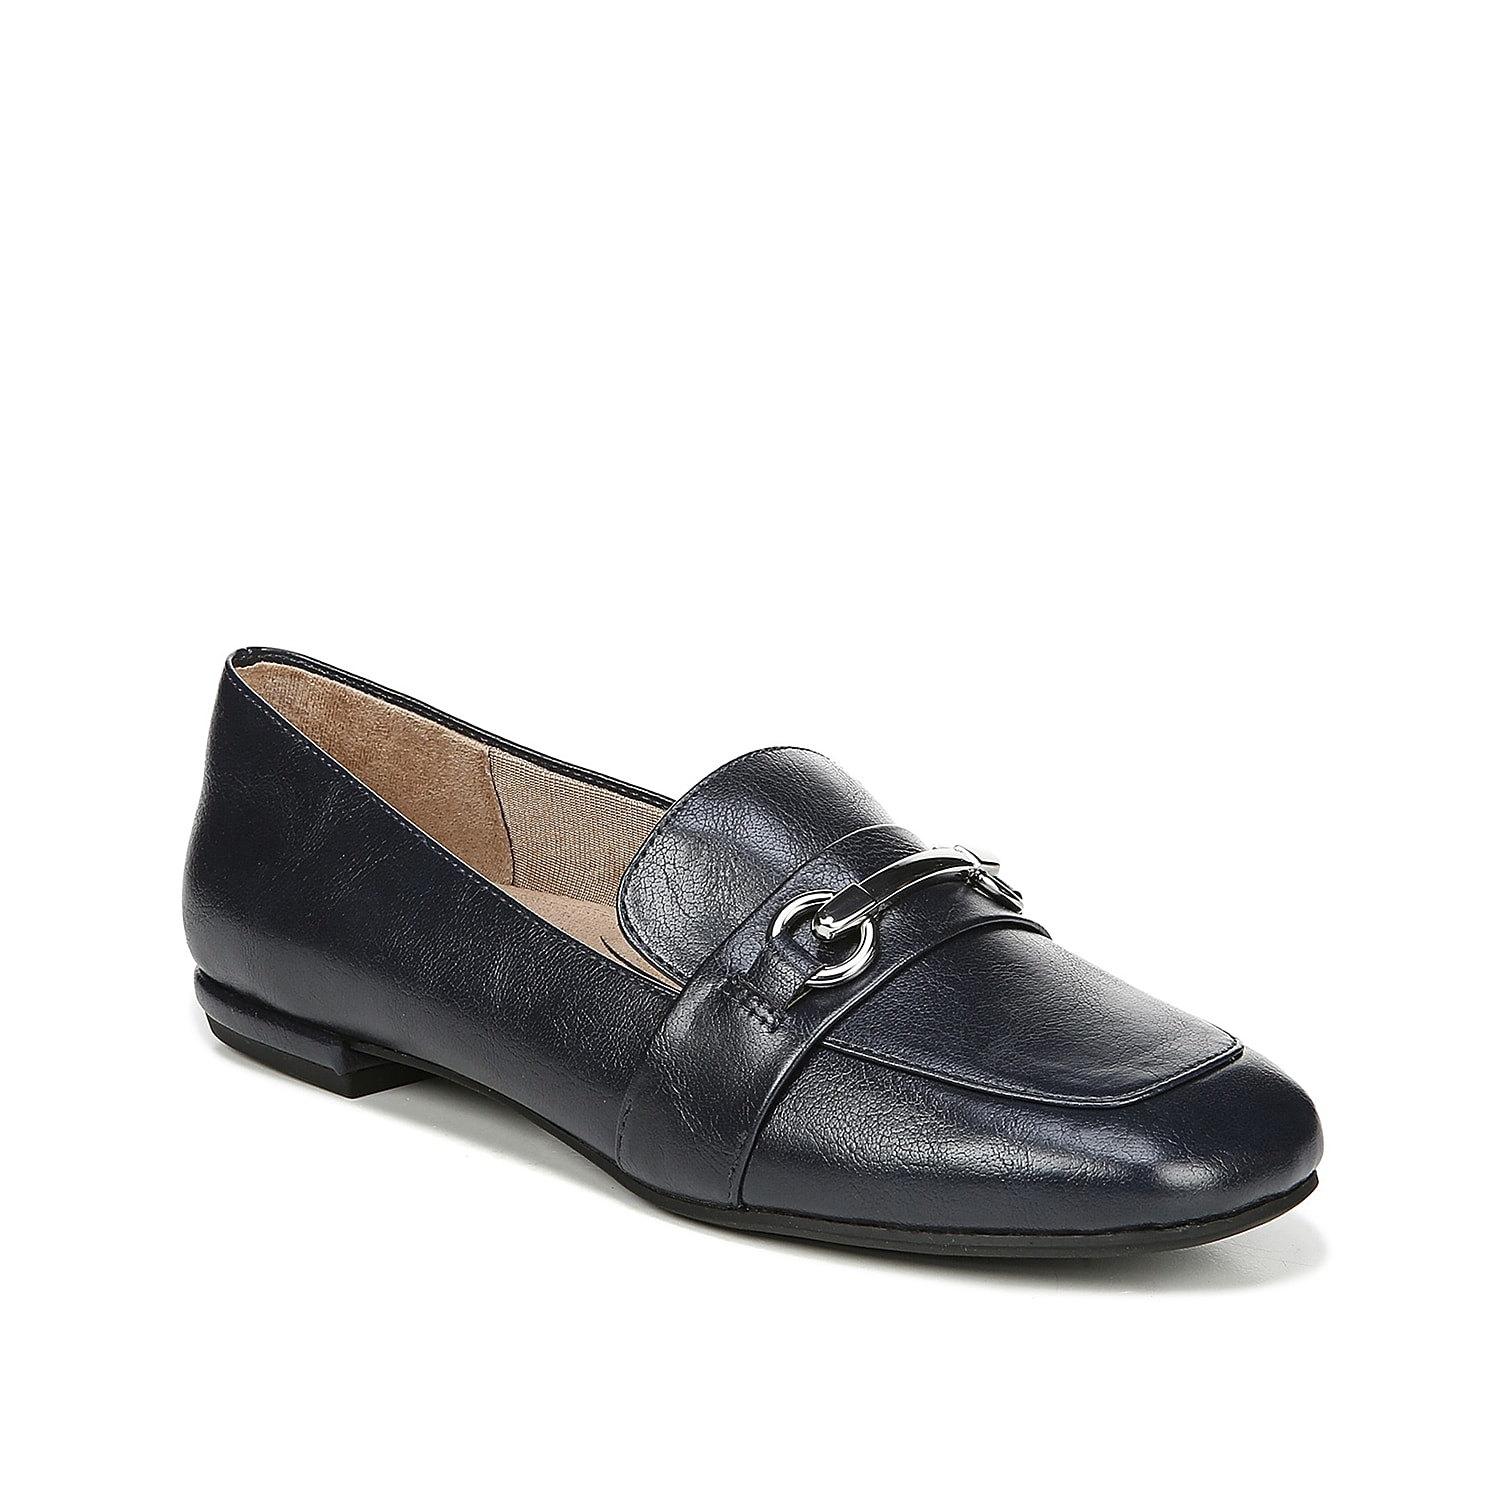 The Brie loafer from LifeStride will show off your sophisticated side. These slip-ons feature a classic bit detail and a contoured insole for daylong comfort.